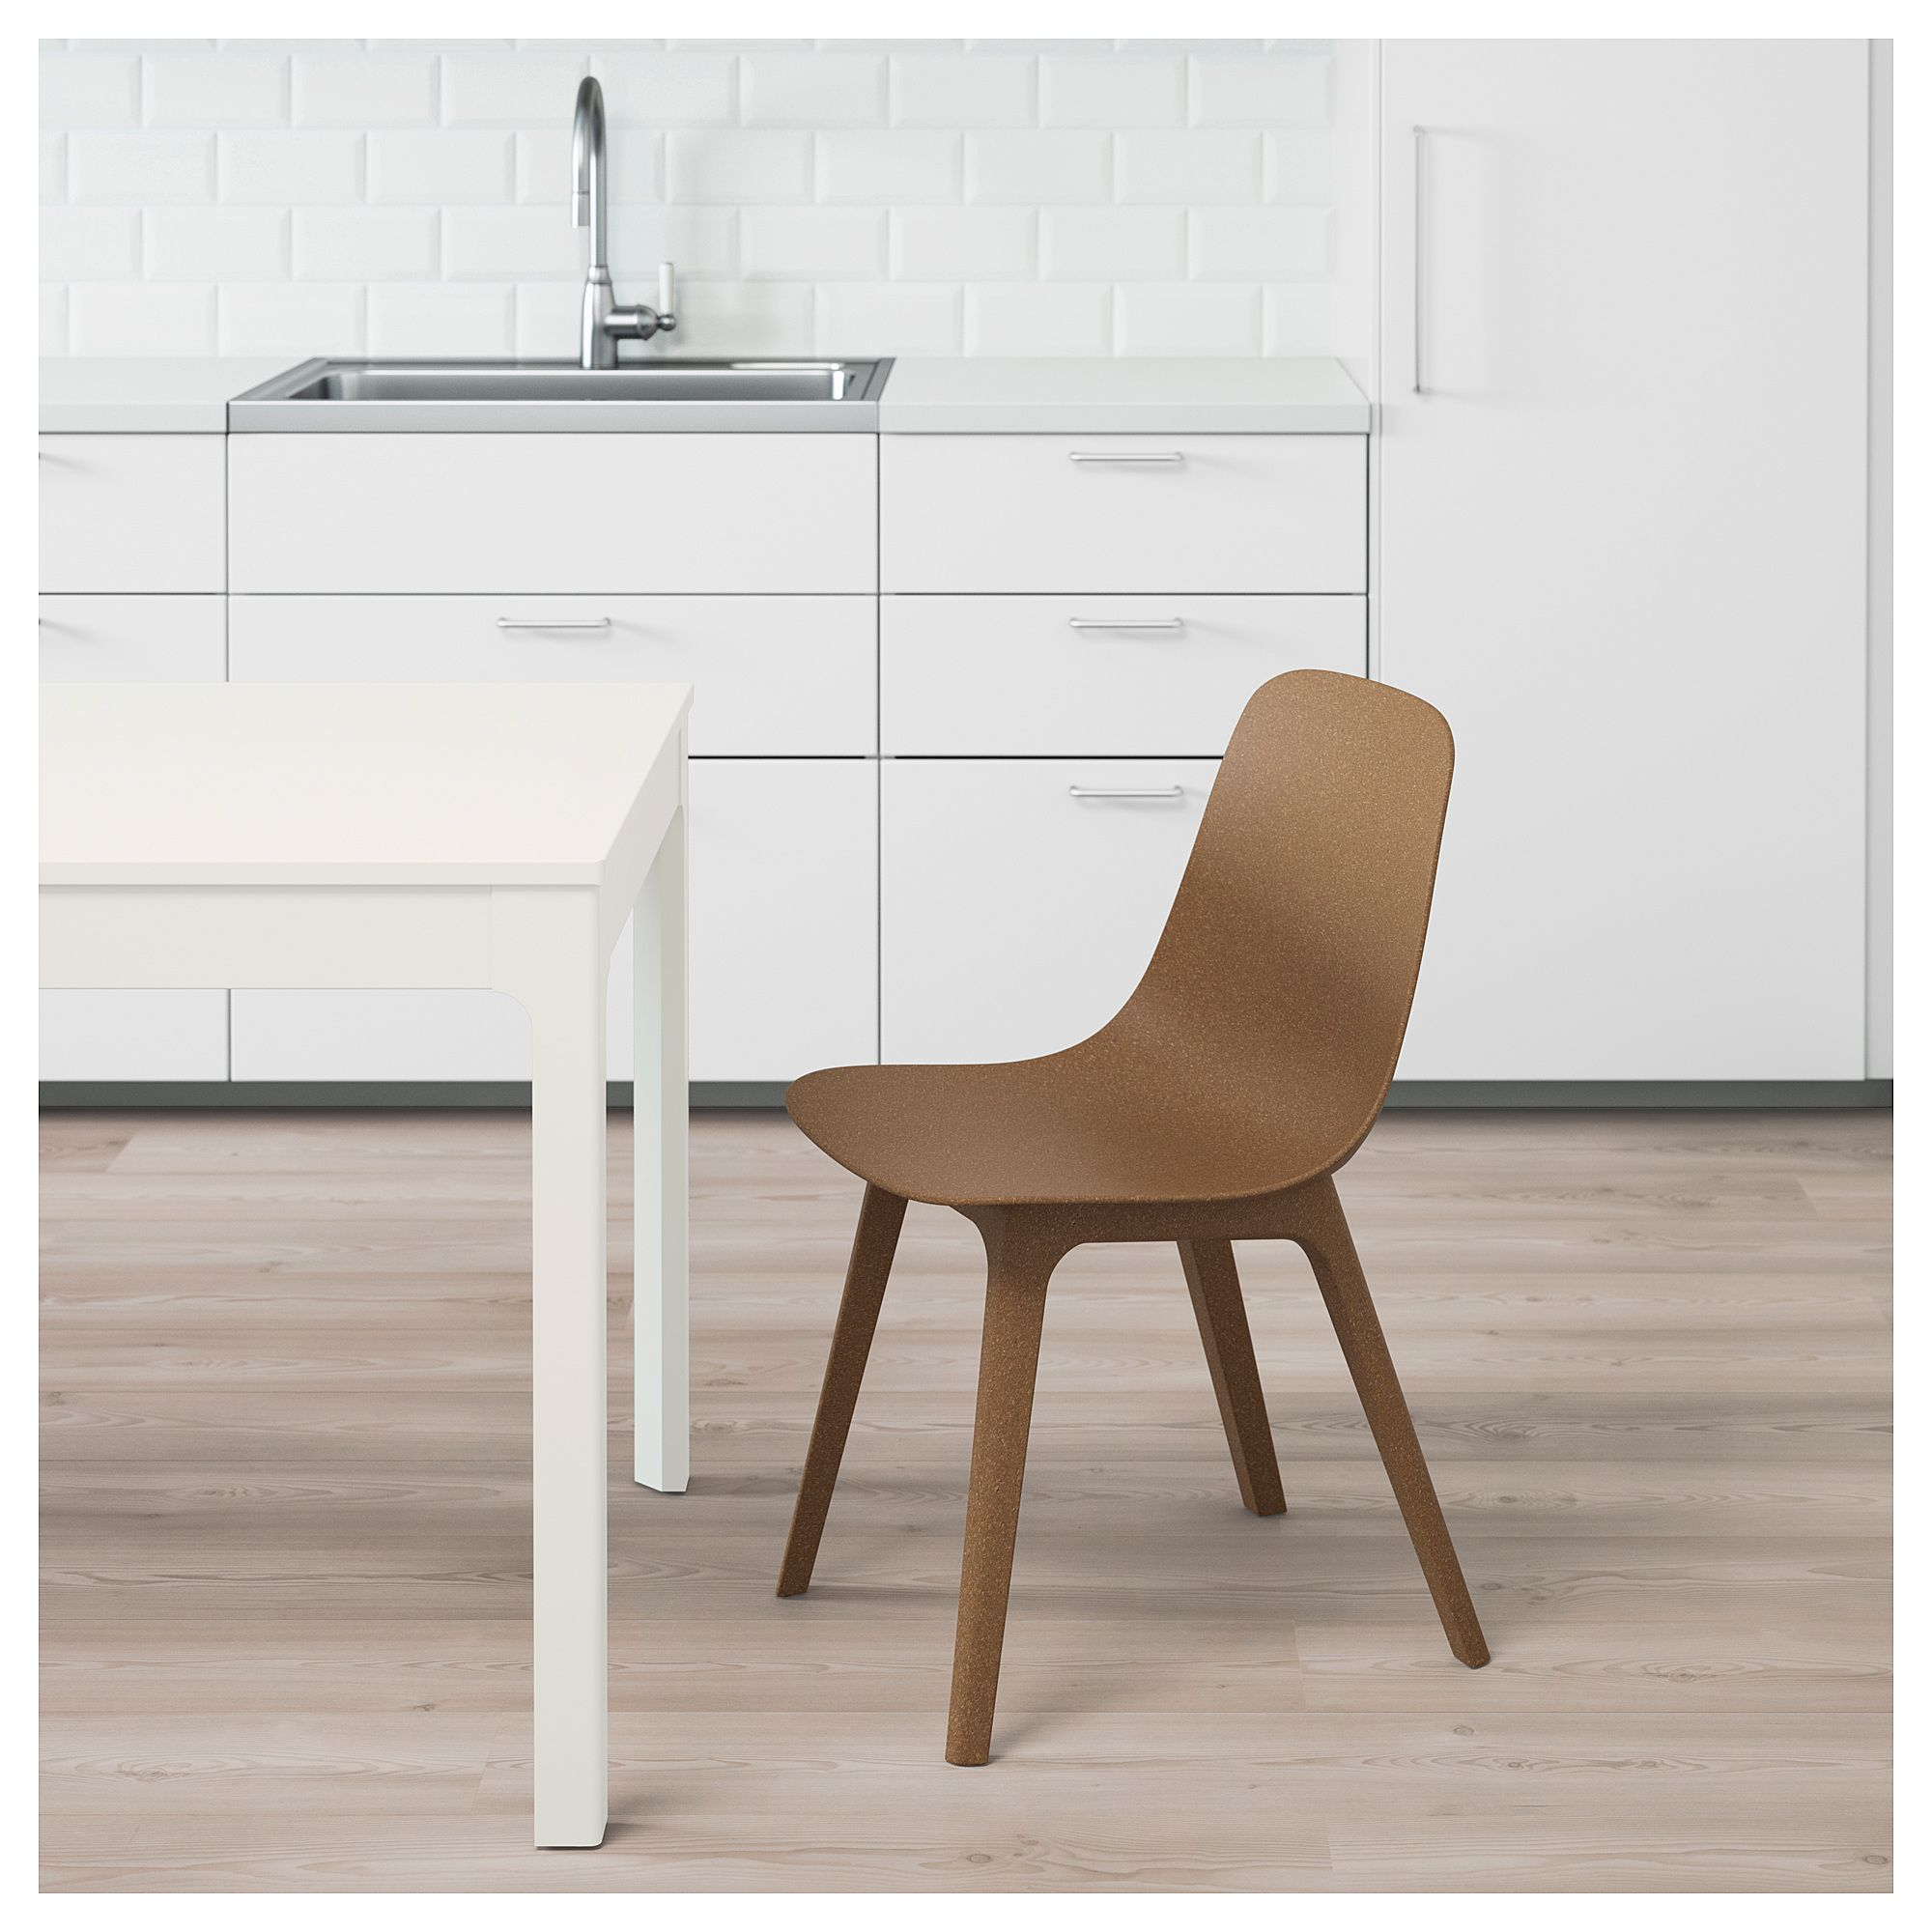 IKEA ODGER Chair brown Ikea dining chair, Ikea chair